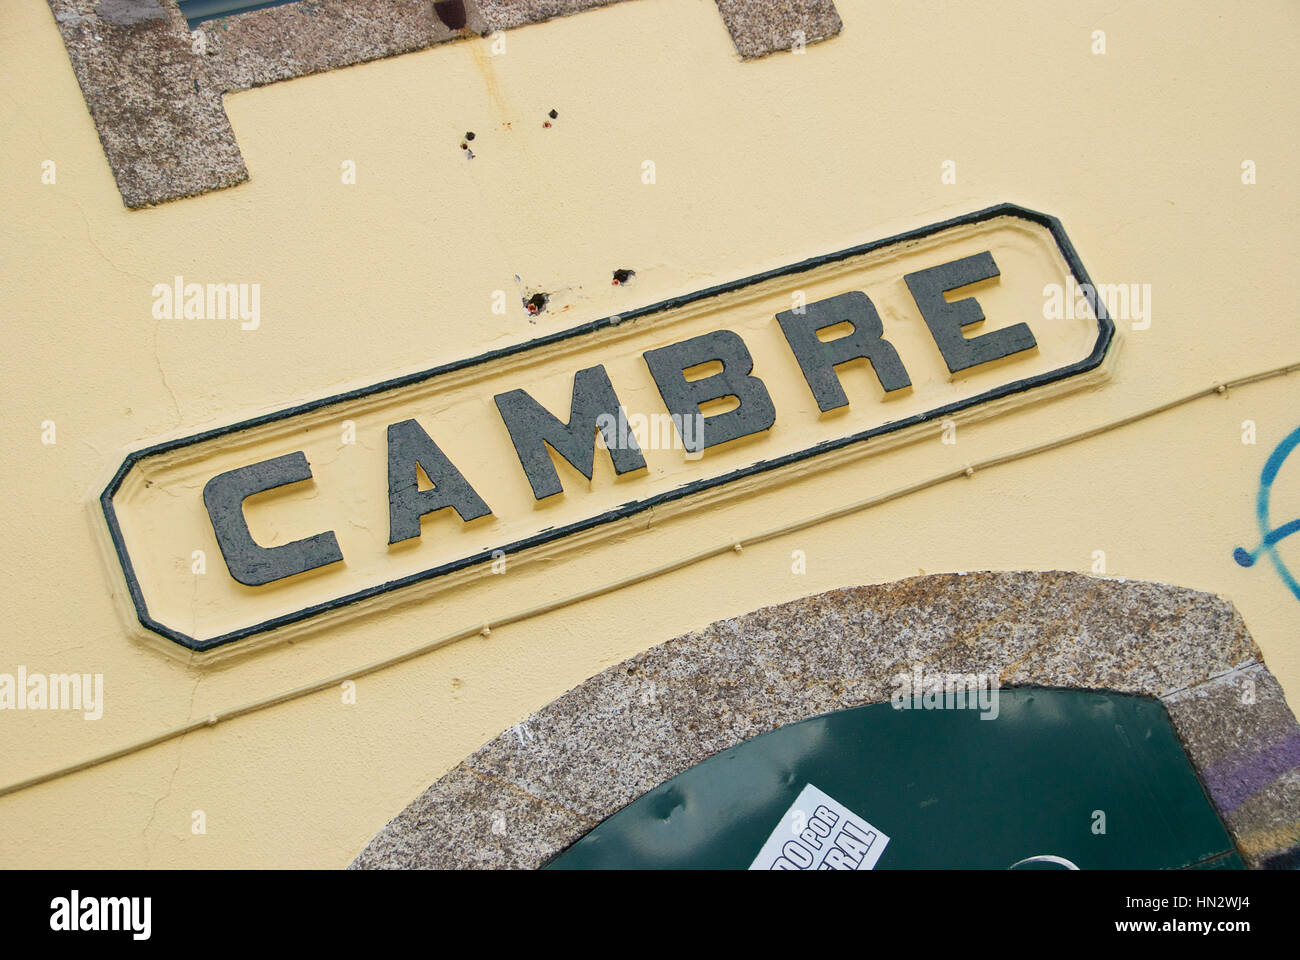 Cambre, A Coruna province, Galice, Espagne. Photo Stock